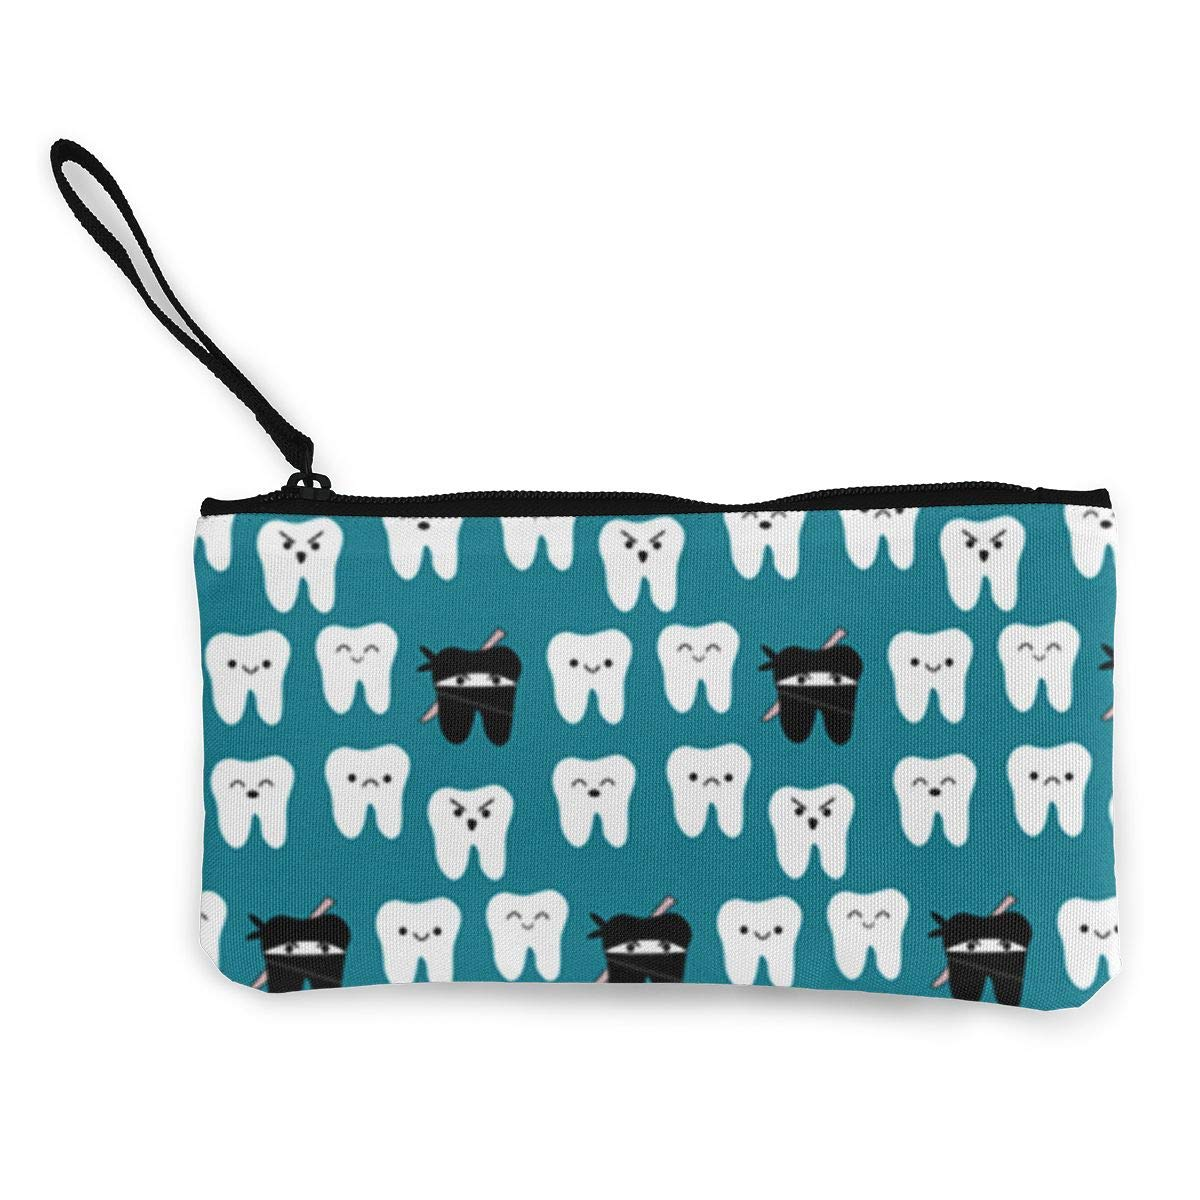 Amazon.com: Coin Pouch Tooth Fabric Way Of The Ninja Tooth ...